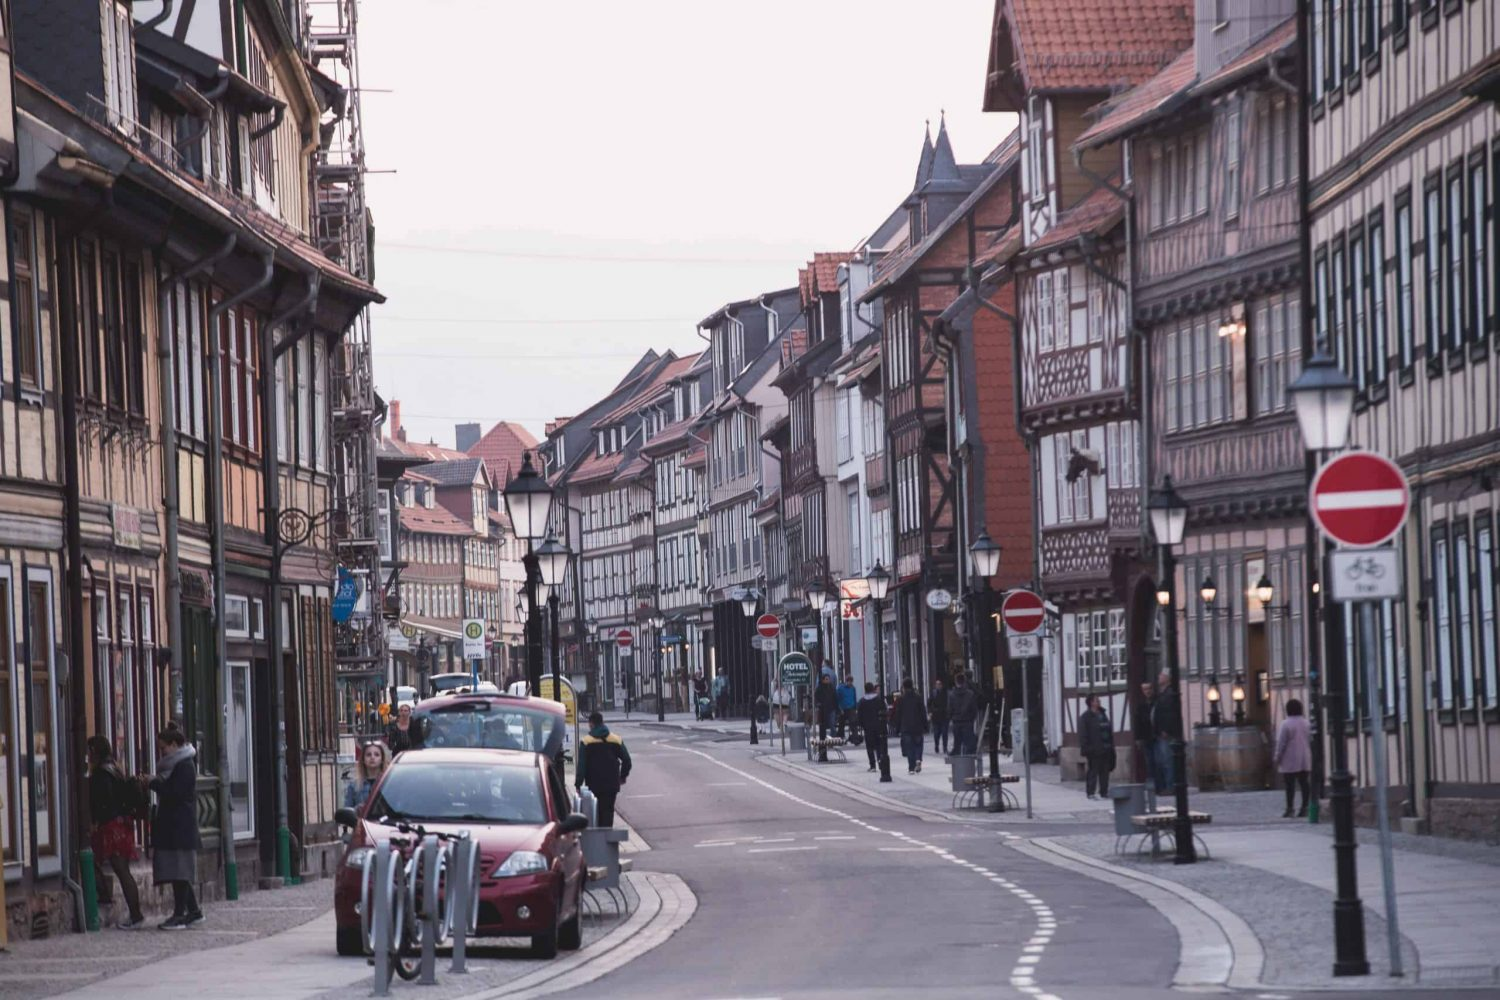 Wernigerode is a pretty town full of colorful half-timbered houses. Located in Germany, it's near the Harz Mountains and is one of 5 great day trips from Hamburg!